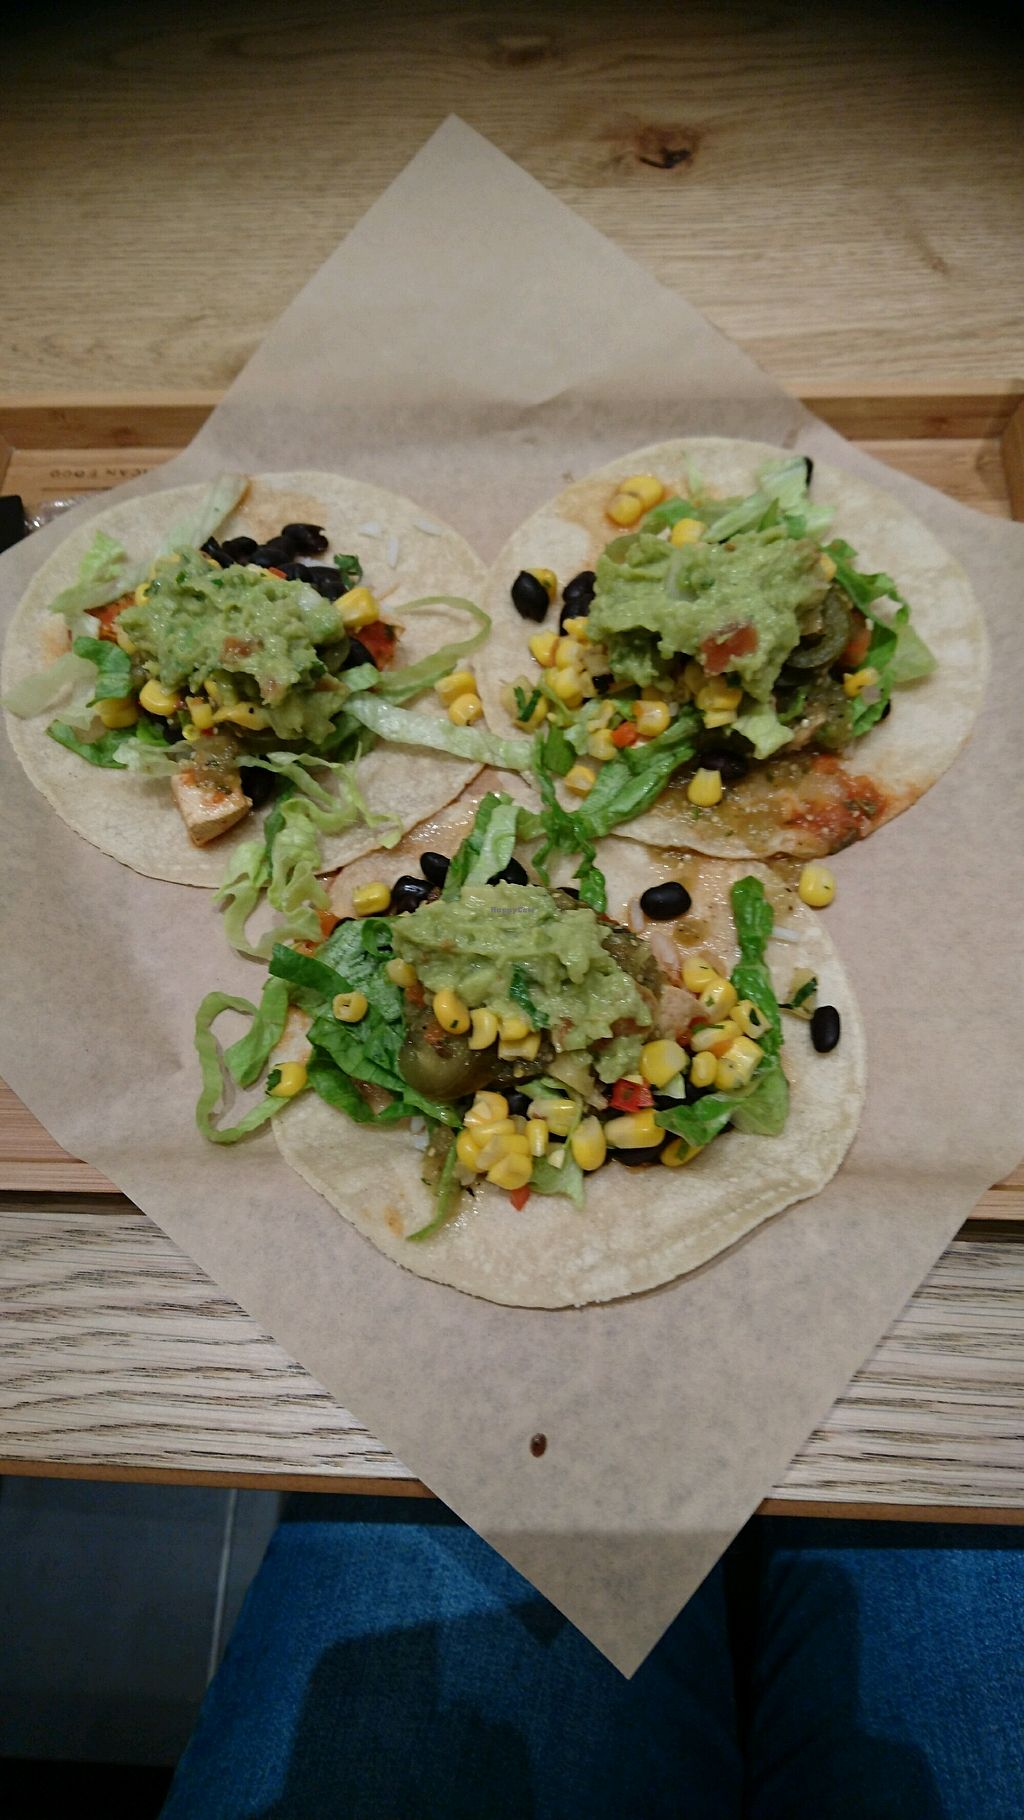 """Photo of Tacuba  by <a href=""""/members/profile/NatalieOughton"""">NatalieOughton</a> <br/>tofu sofritas tacos with guacamole <br/> February 17, 2018  - <a href='/contact/abuse/image/107574/360219'>Report</a>"""